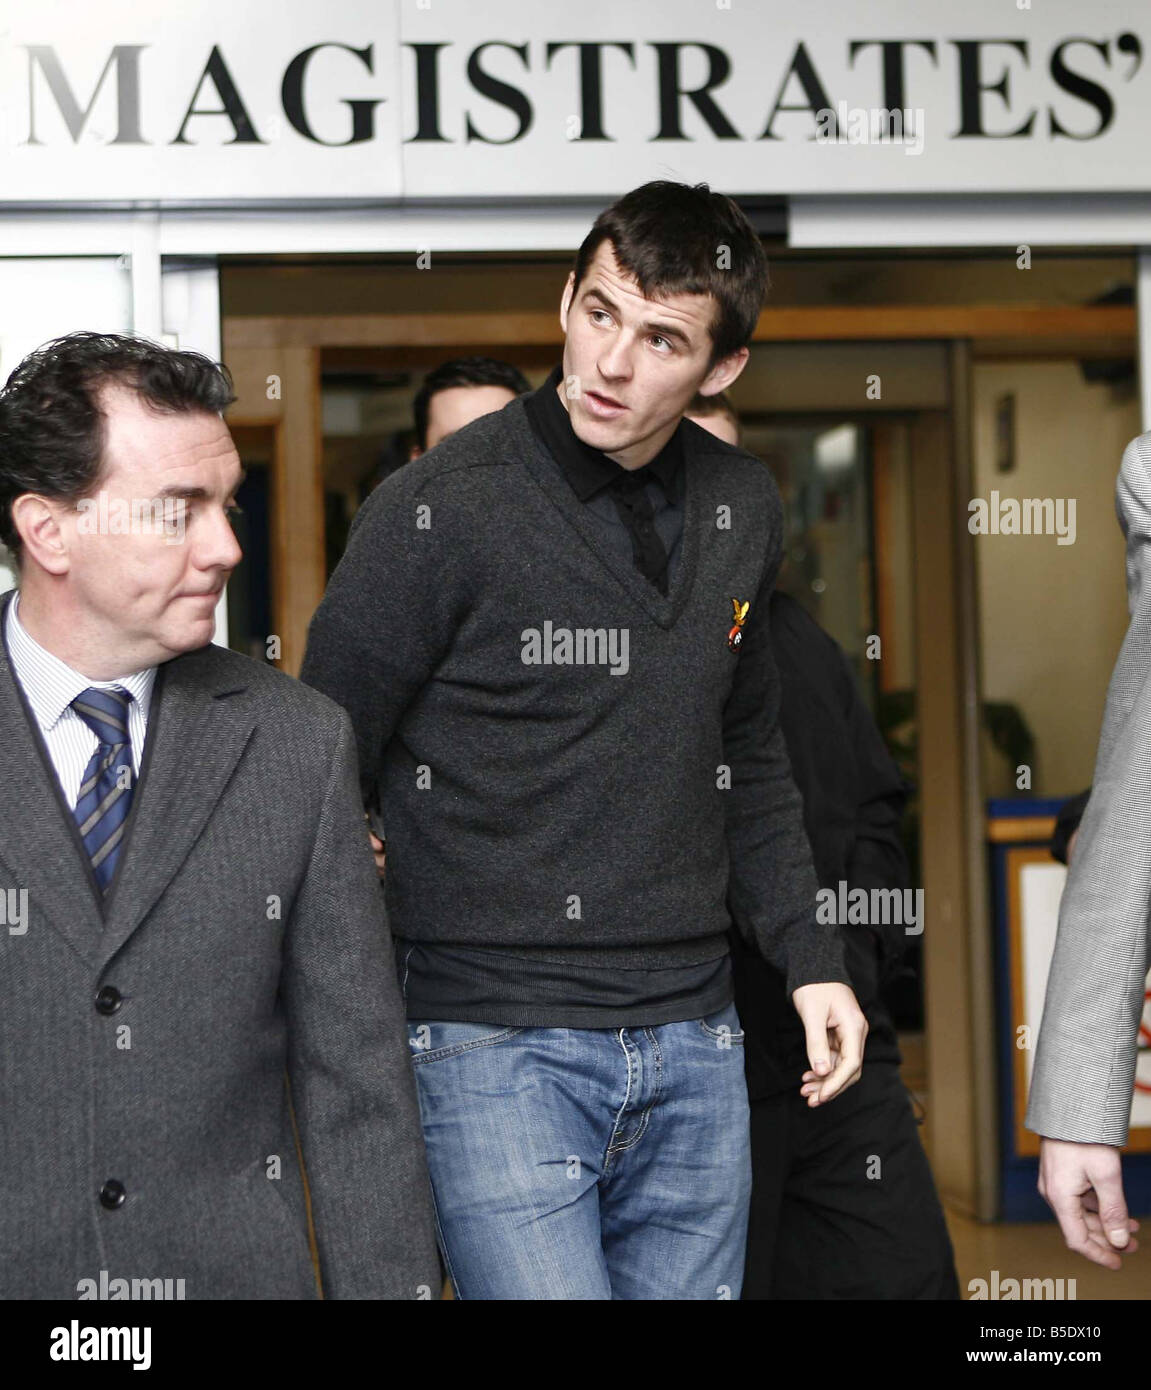 Newcastle United footballer Joey Barton leaves Liverpool Magistrates Court after appearing on on assault charges - Stock Image